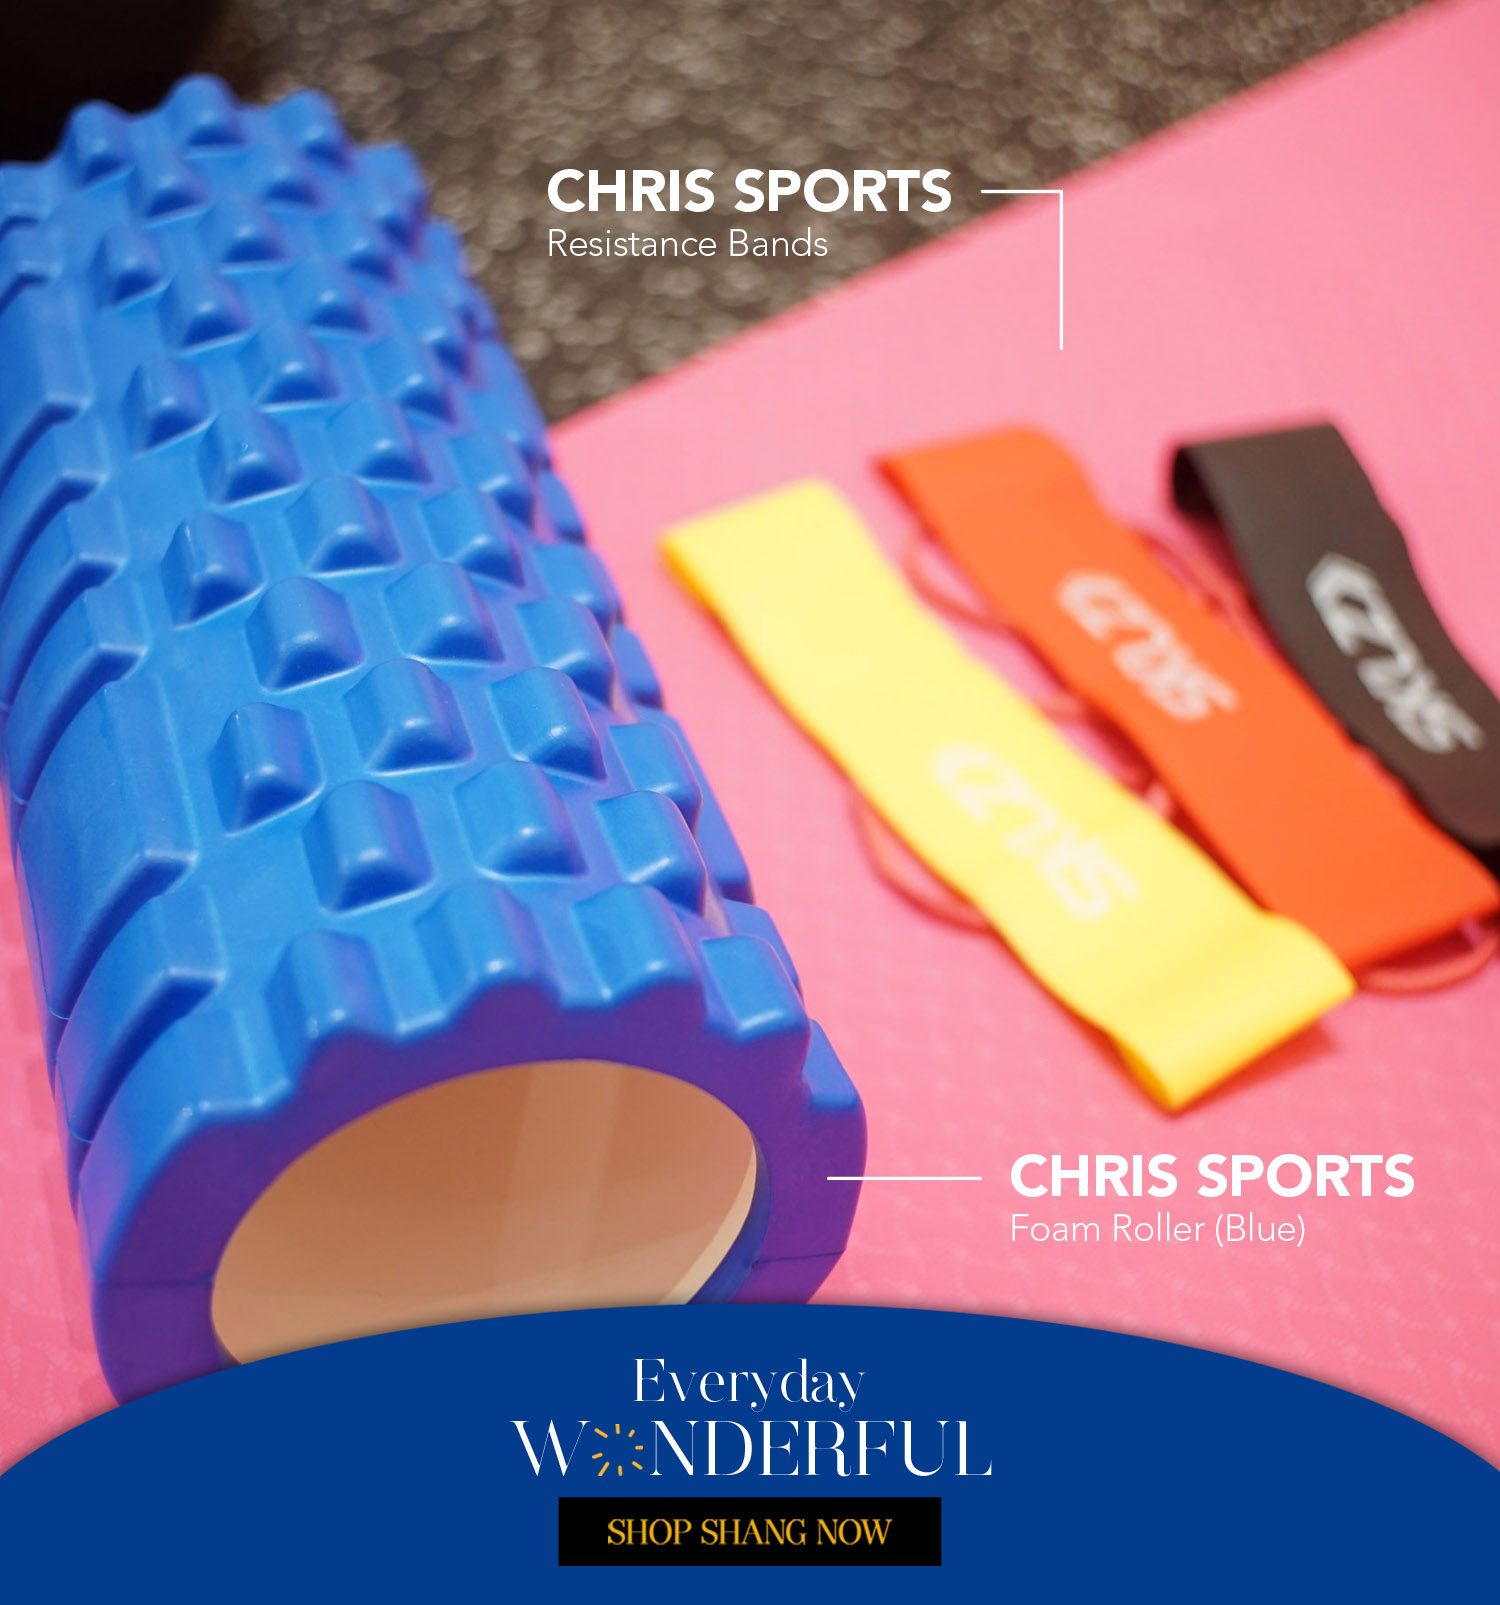 Resistance Bands and Foam Roller from Chris Sports